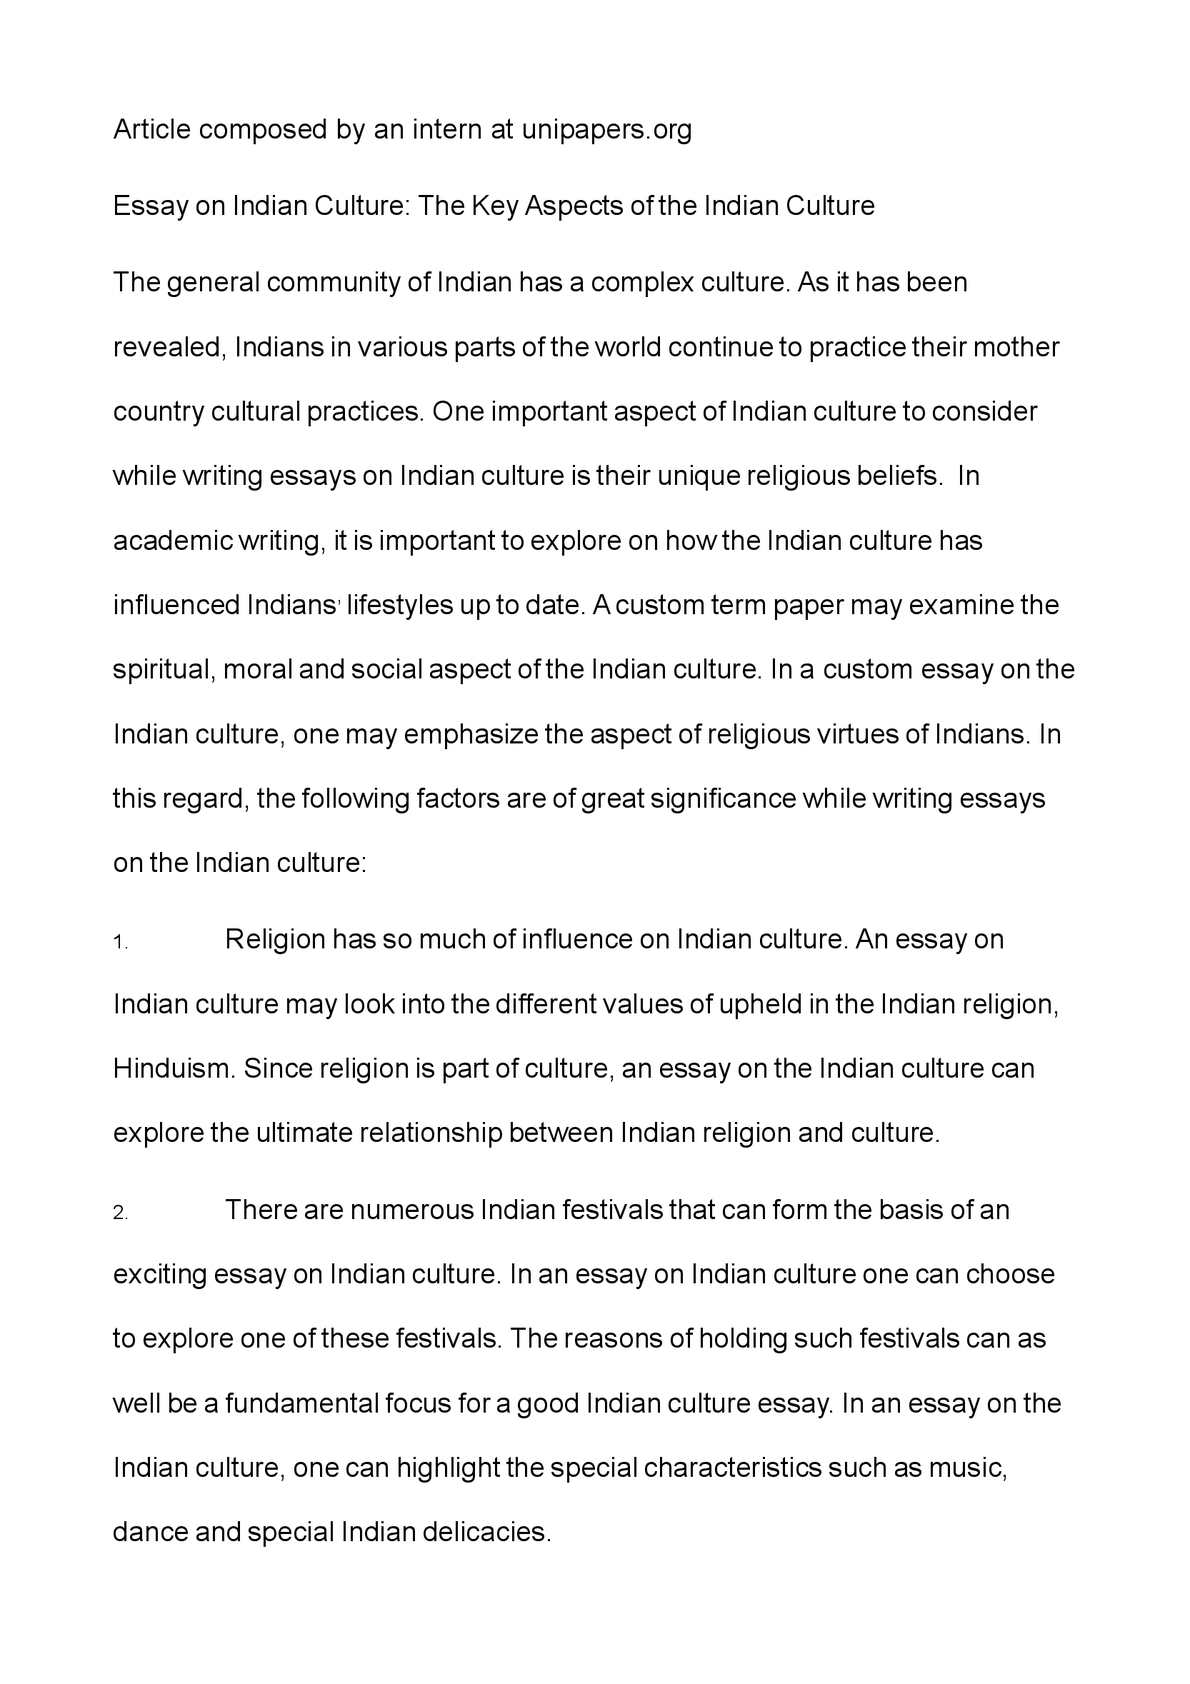 My School Essay In English  Write My Essay Paper also Argumentative Essay Sample High School Calamo  Essay On Indian Culture The Key Aspects Of The Indian Culture Reflective Essay Thesis